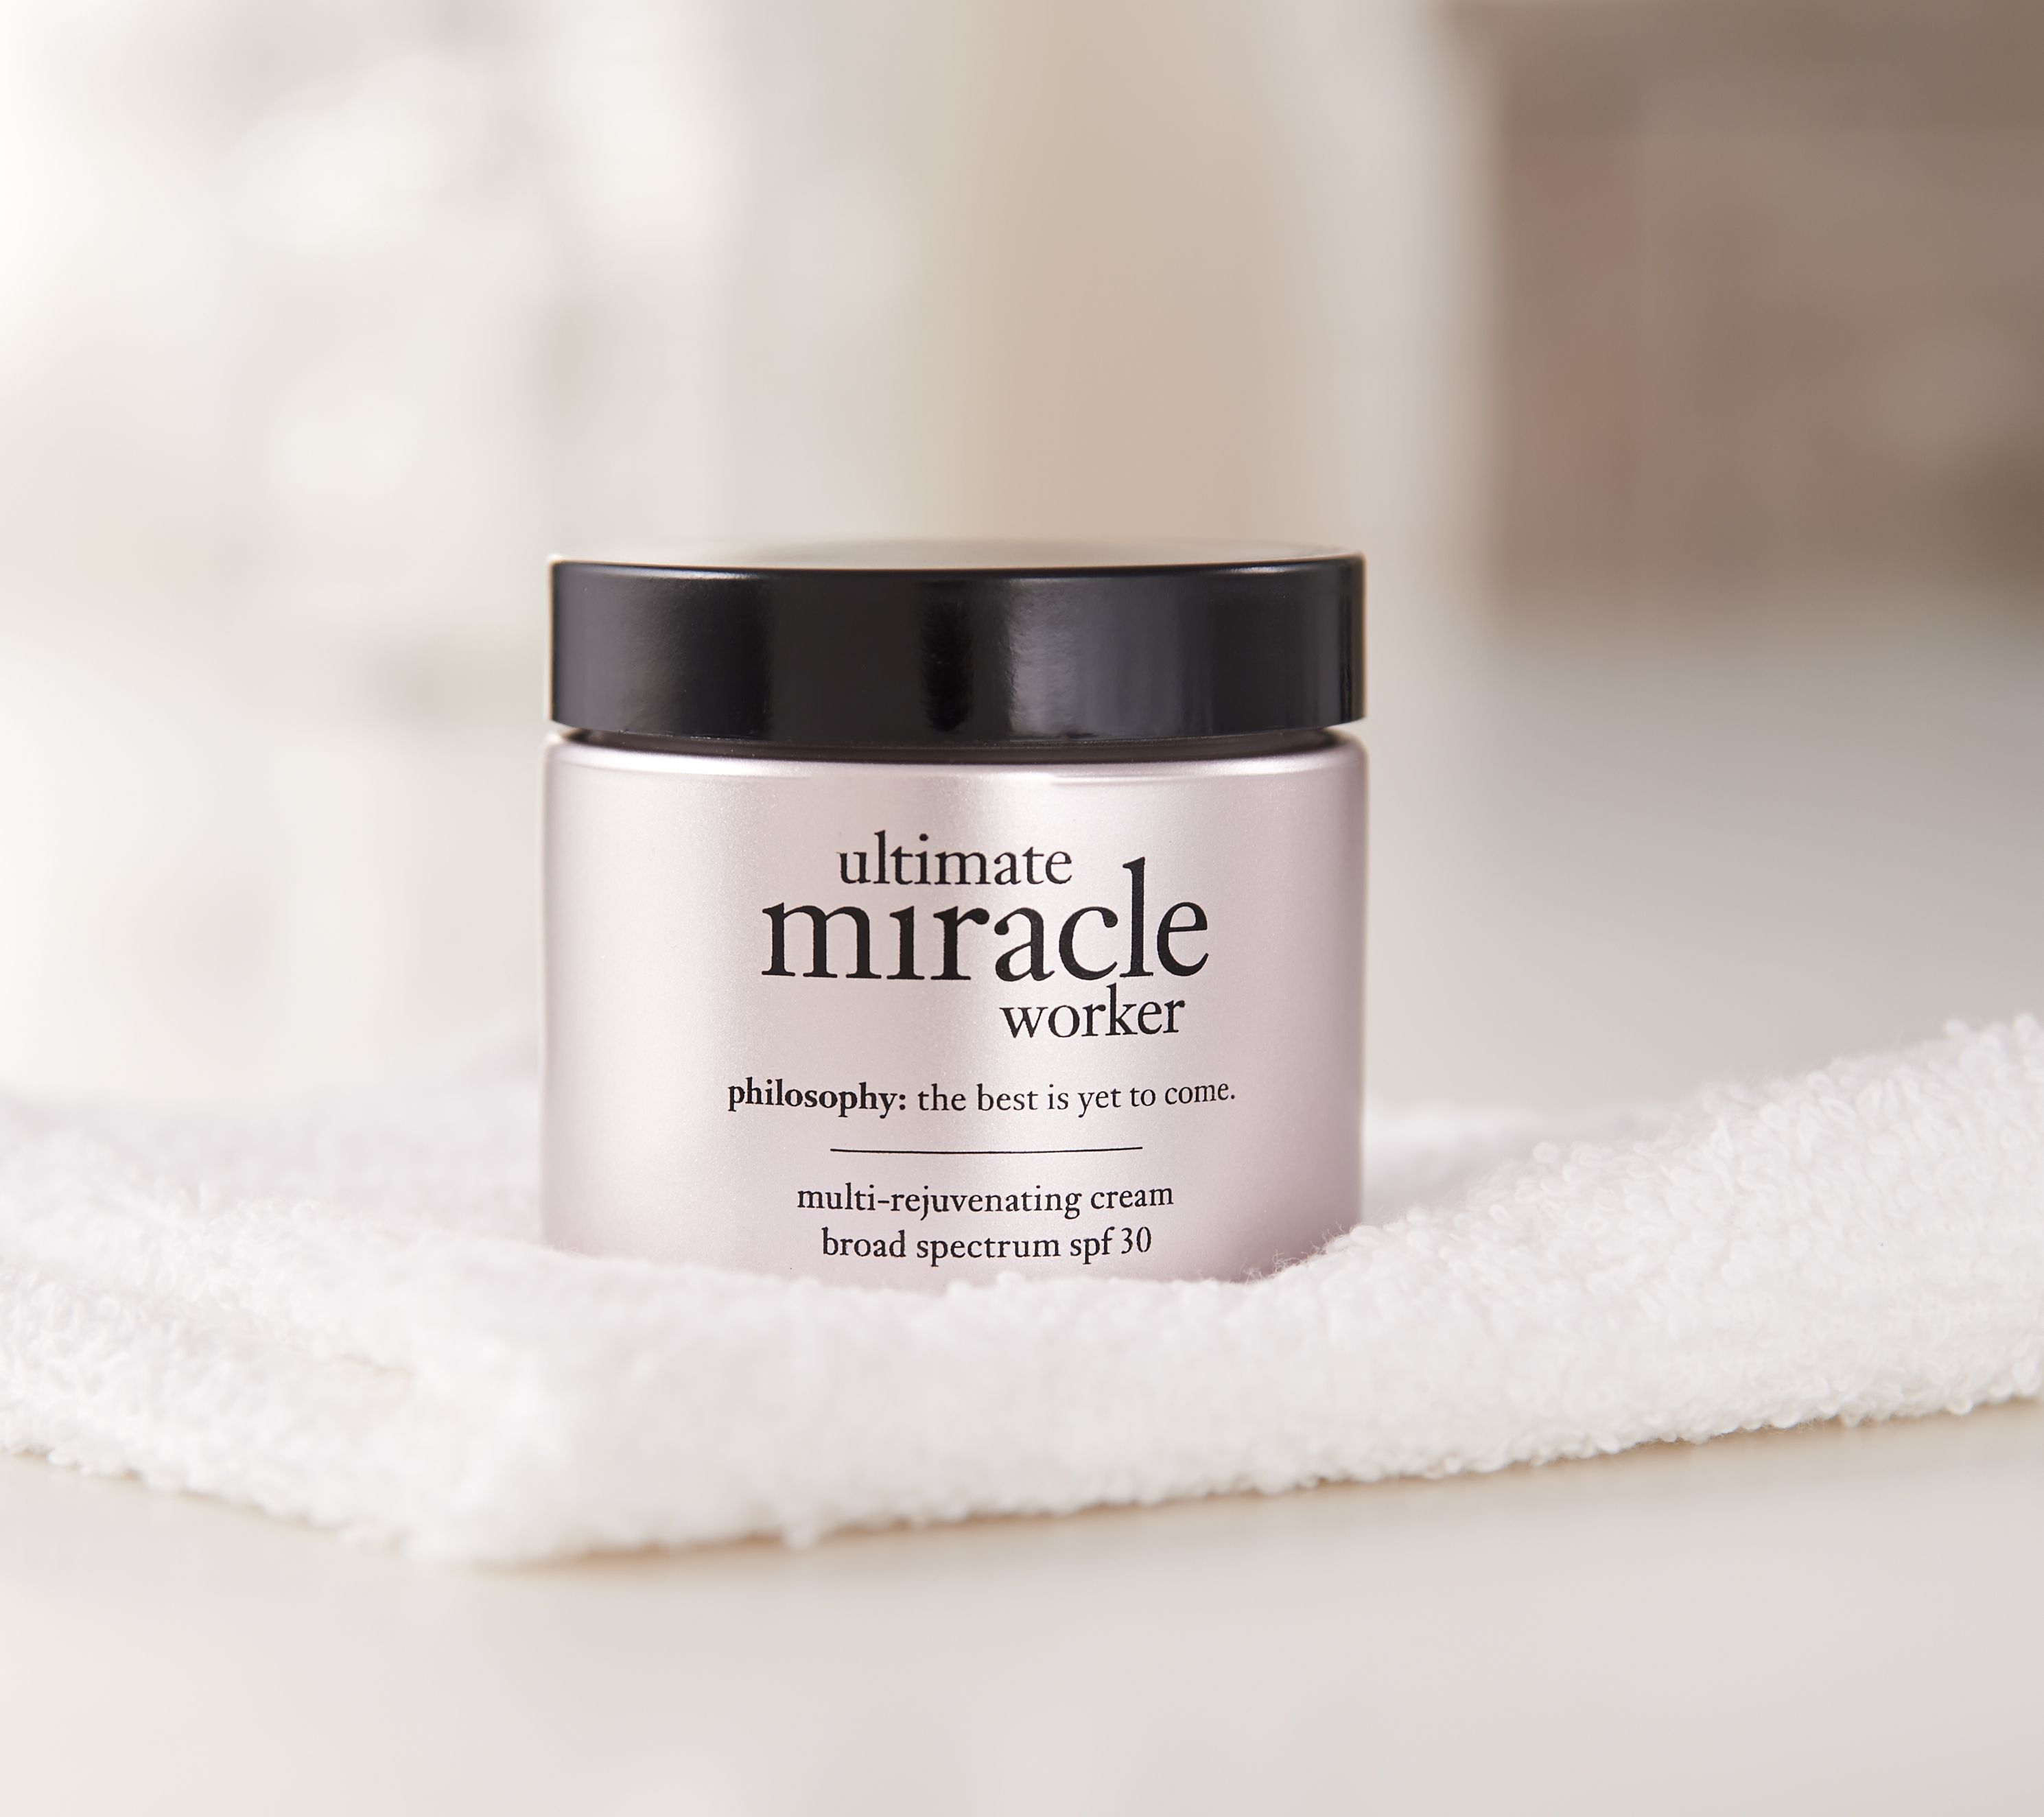 philosophy ultimate miracle worker face cream 2 oz - Page 1 — QVC.com